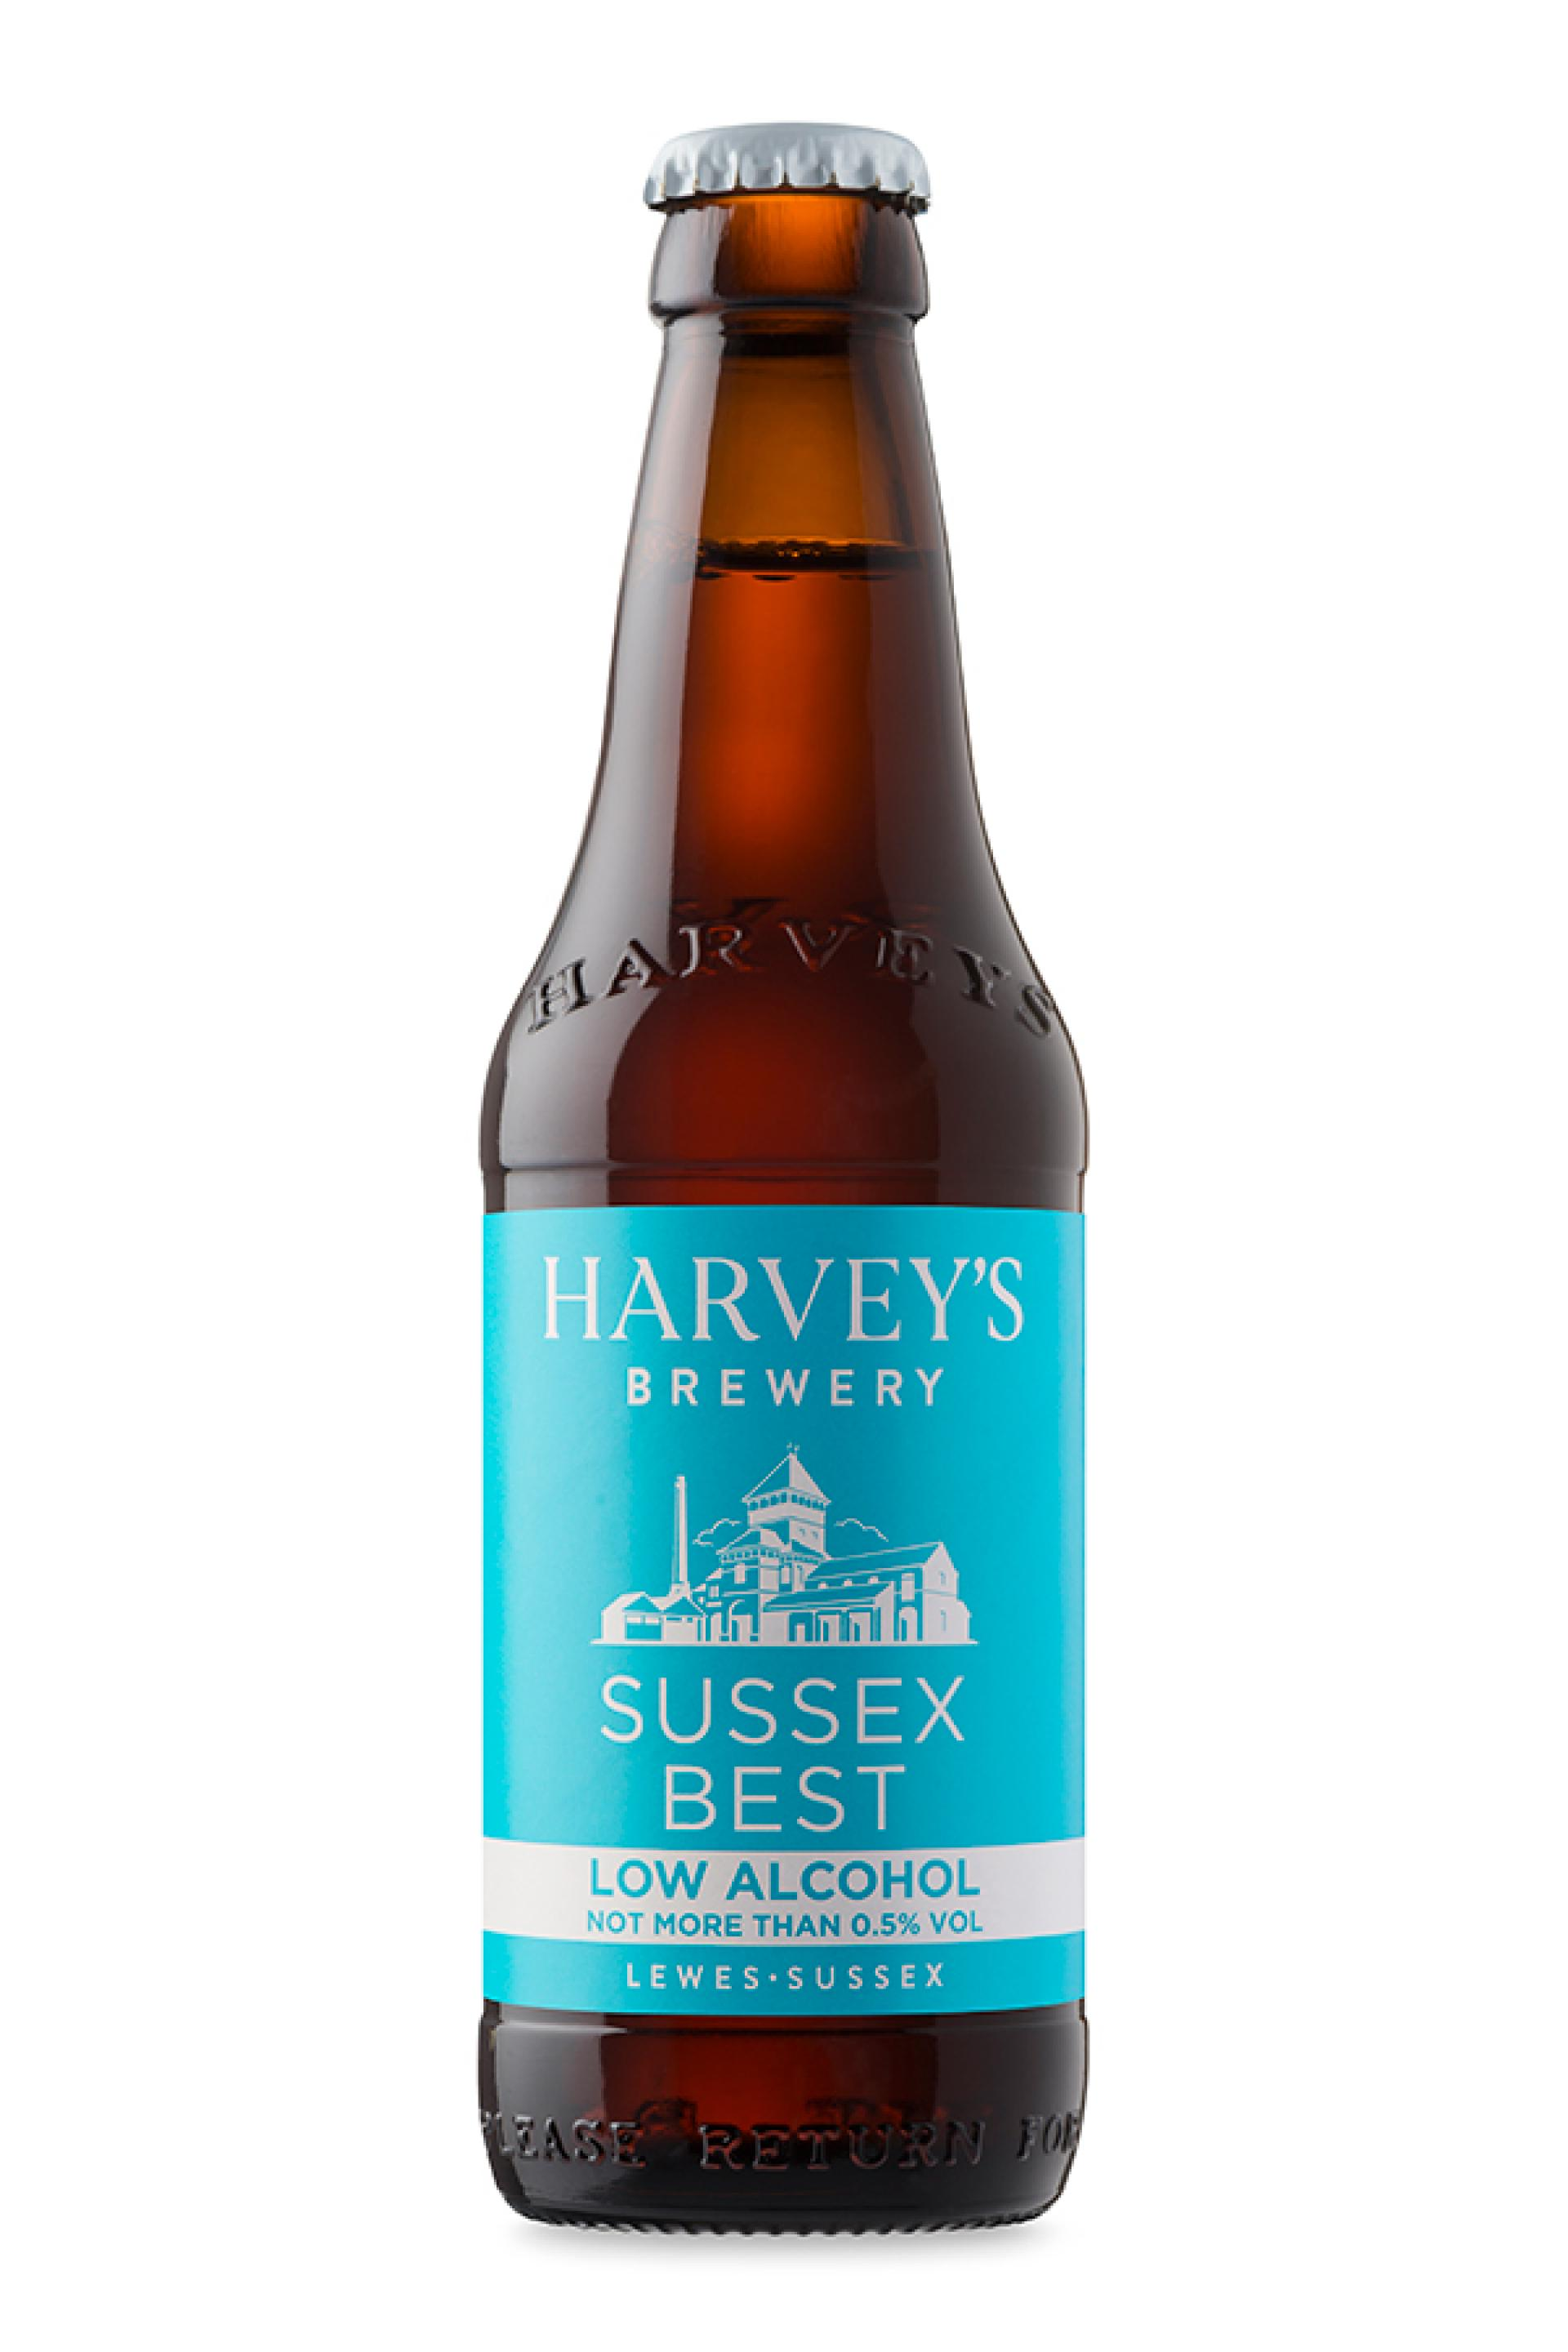 Non Alcoholic Beers London – Harvey's Brewery's Low Alcohol Sussex Best Bitter – 0.5% ABV